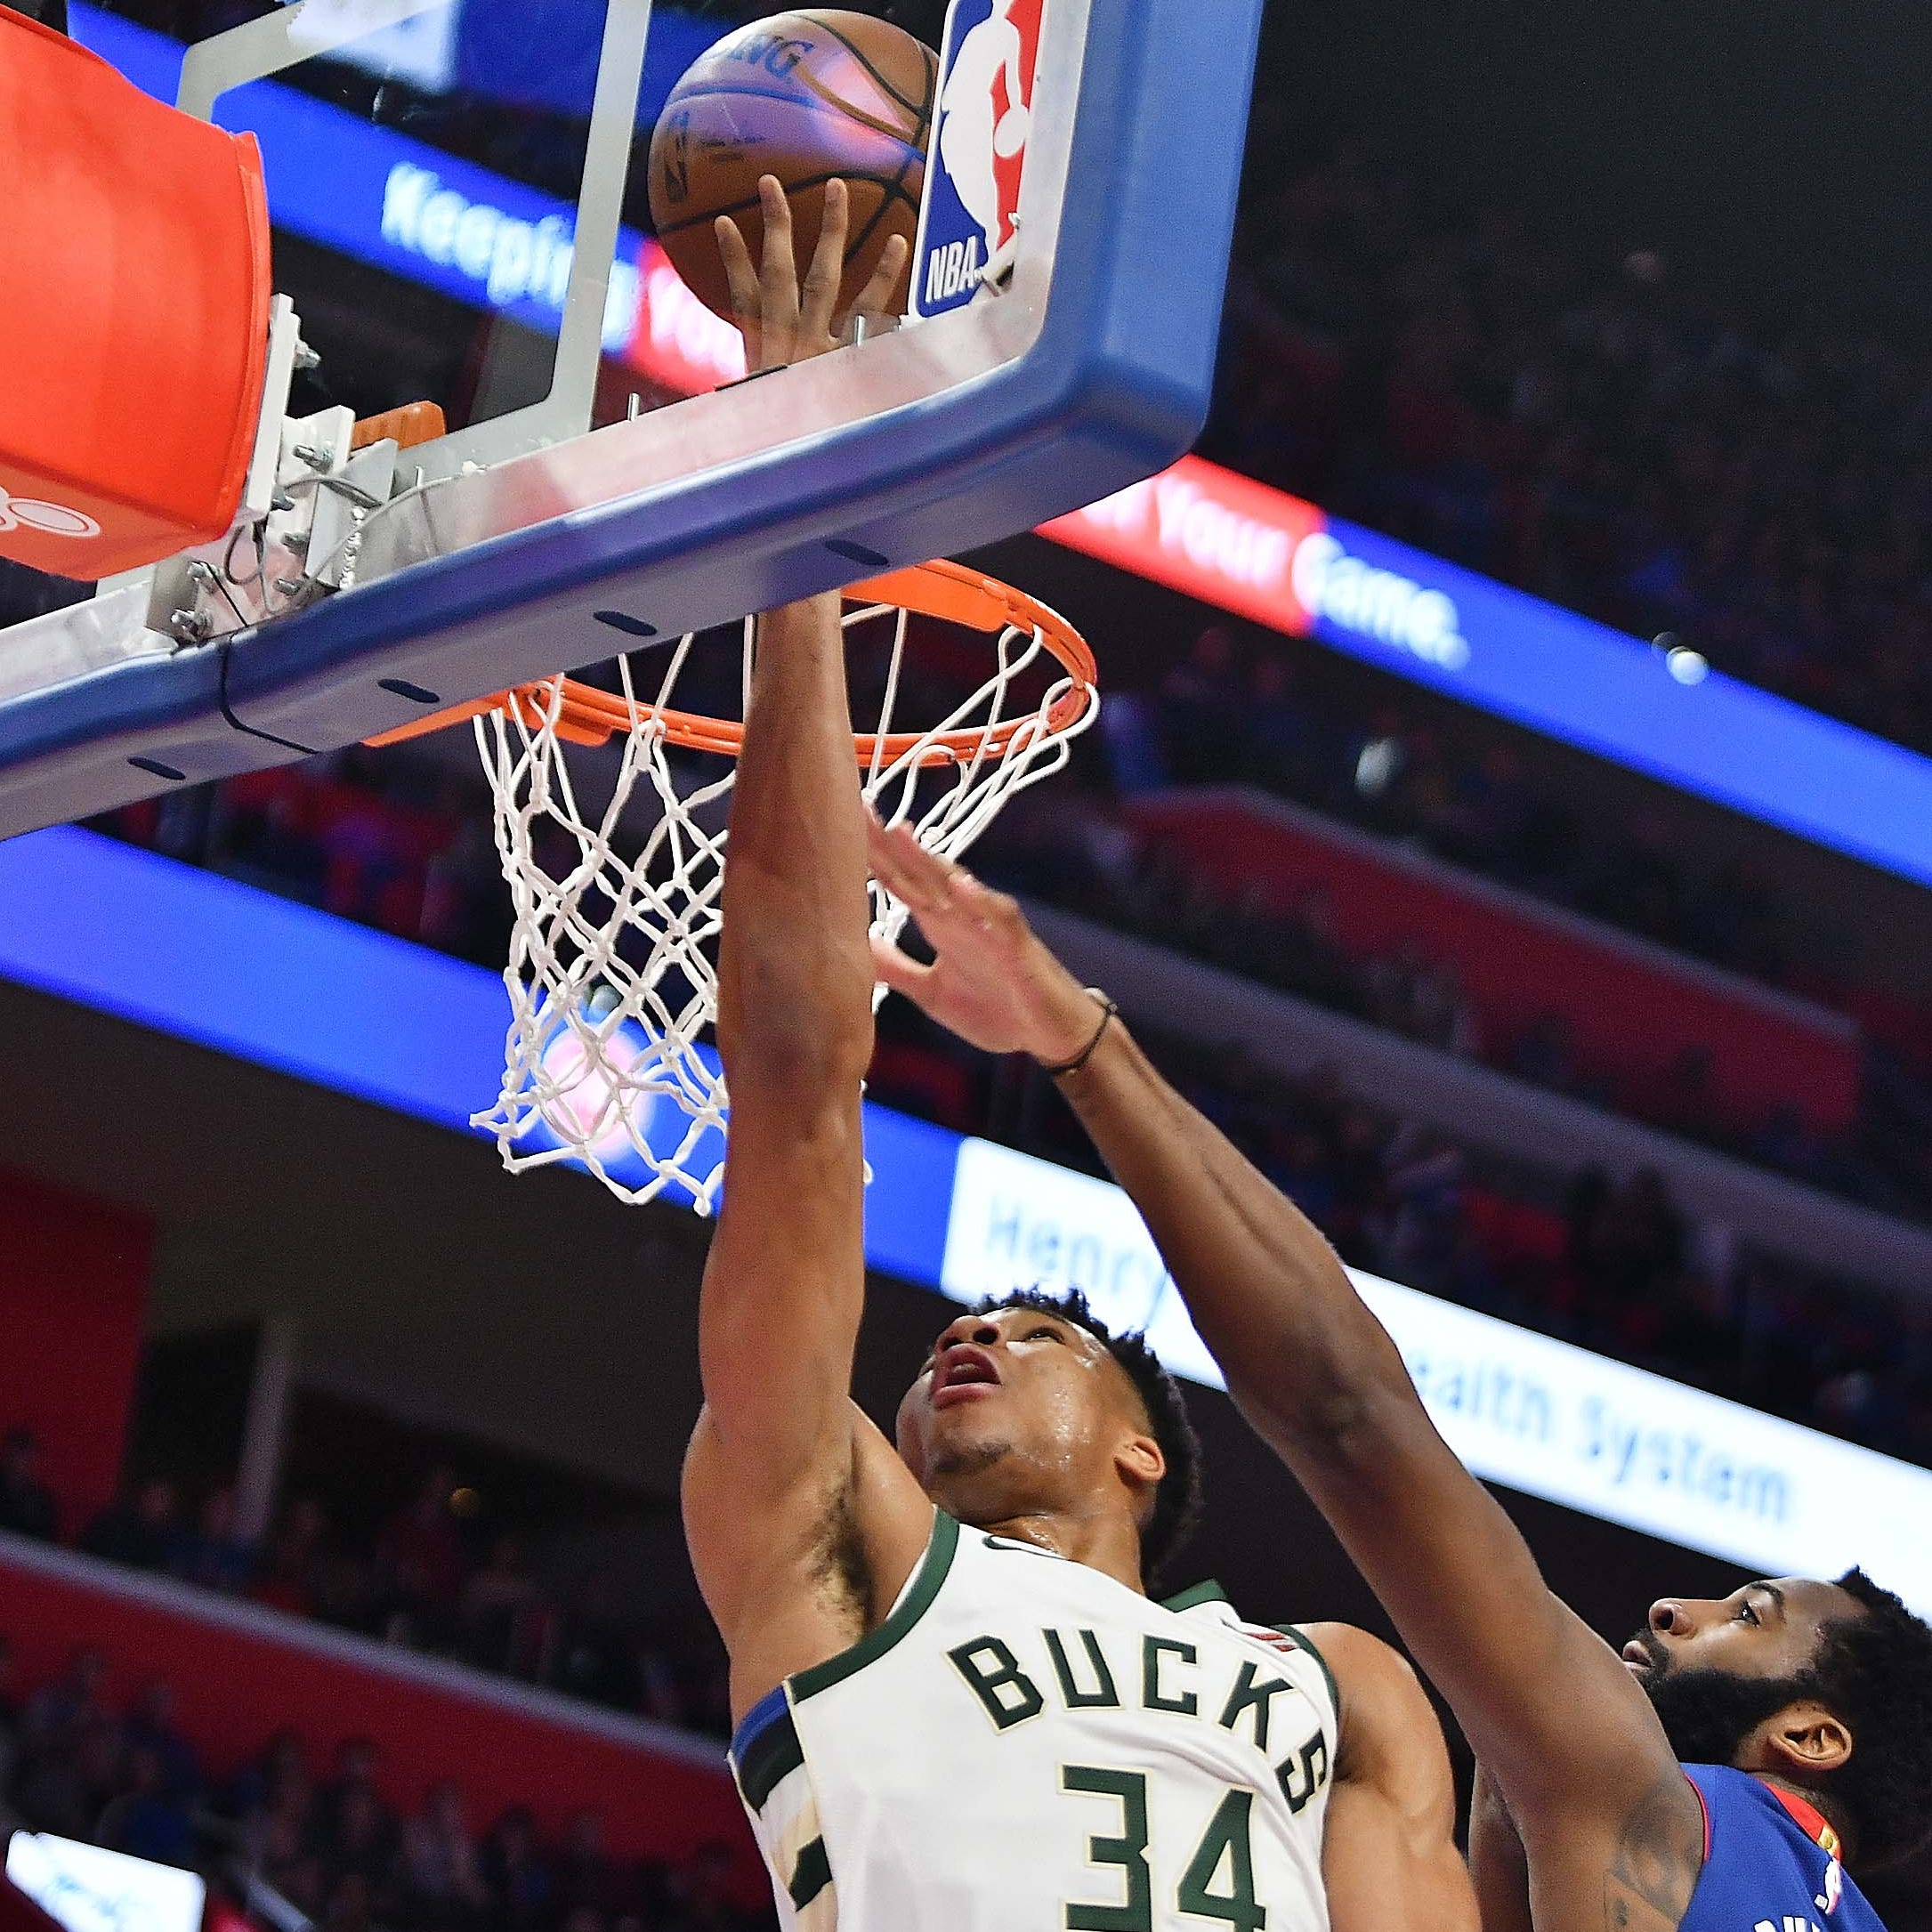 Griffin's return for Pistons can't stop Bucks from taking 3-0 stranglehold in series